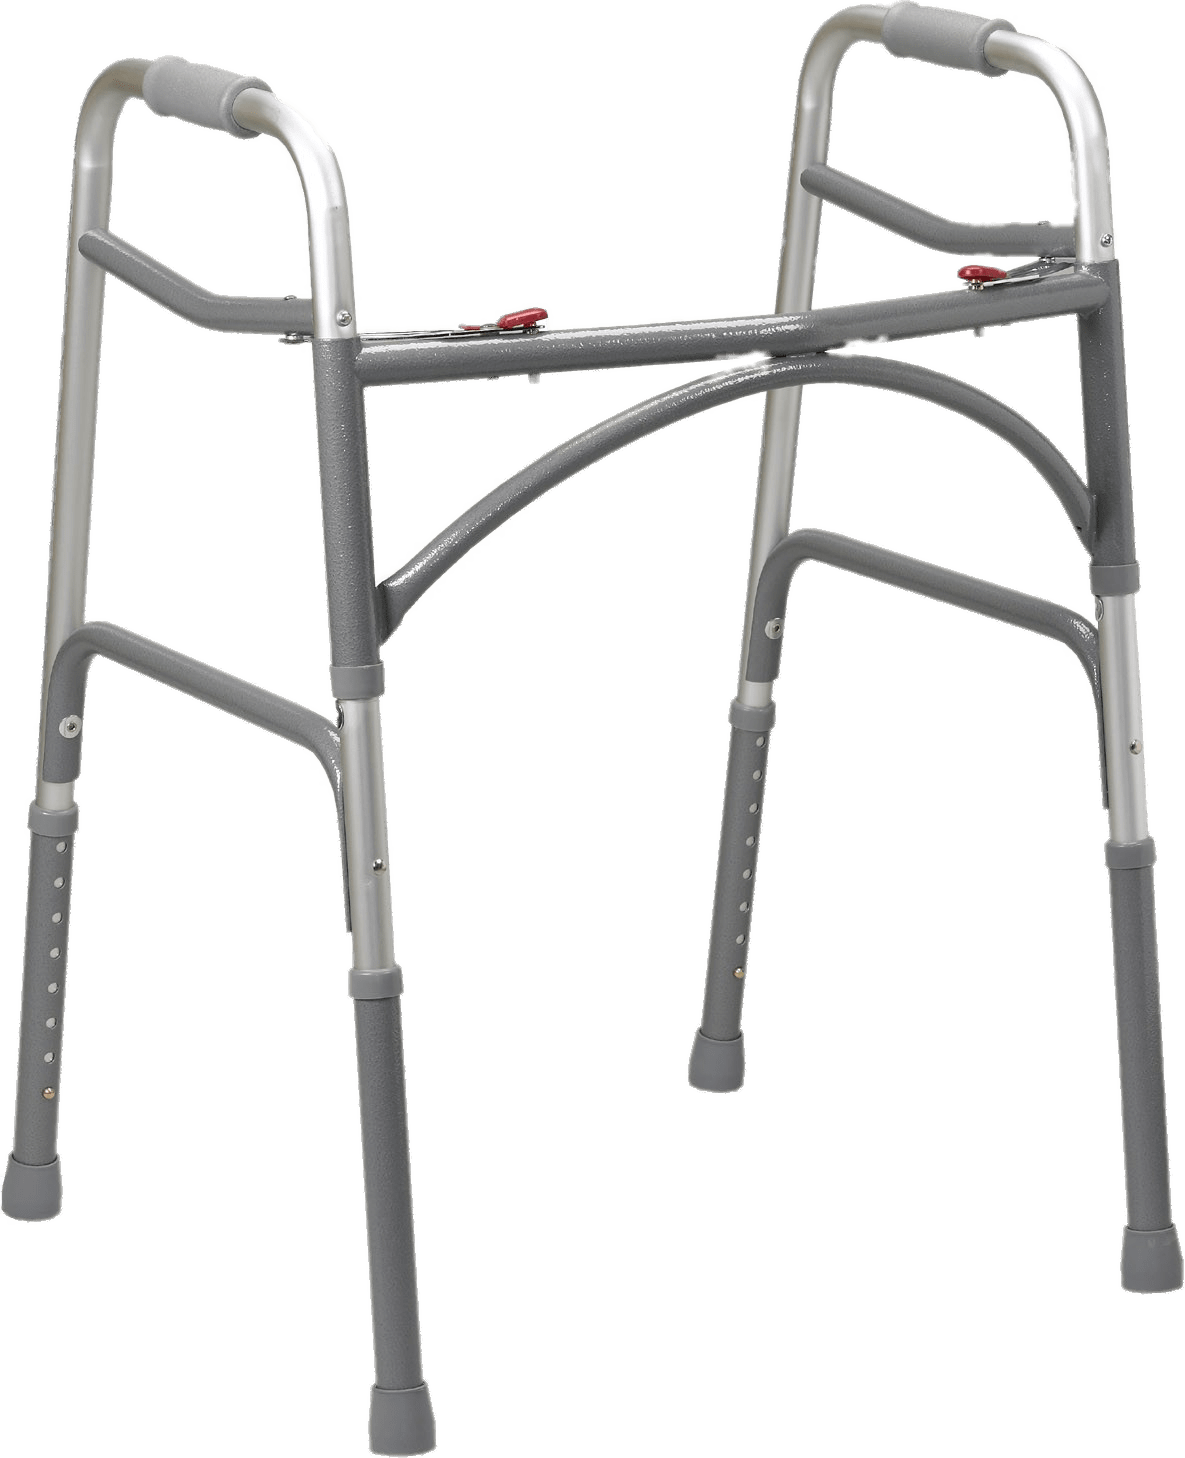 Heavy Duty Bariatric Walker transparent PNG.